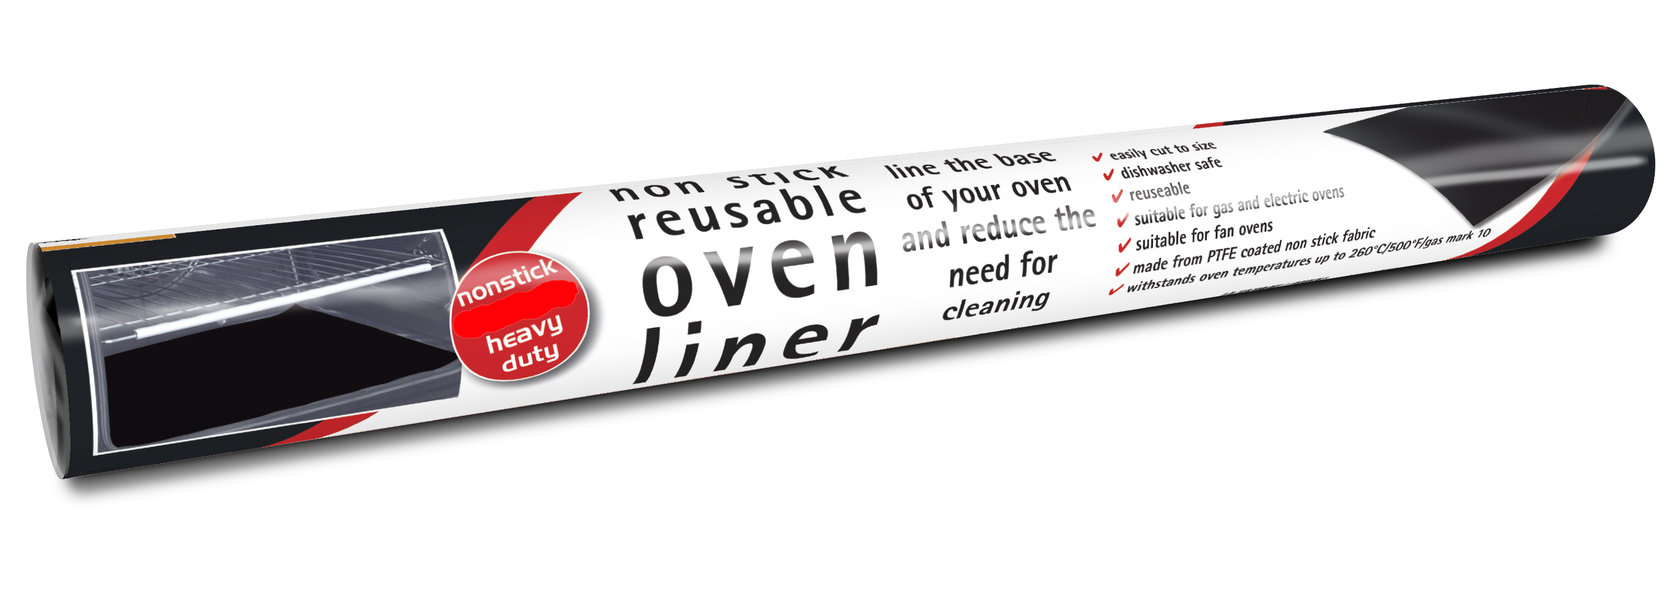 Oven Liner - heavy duty